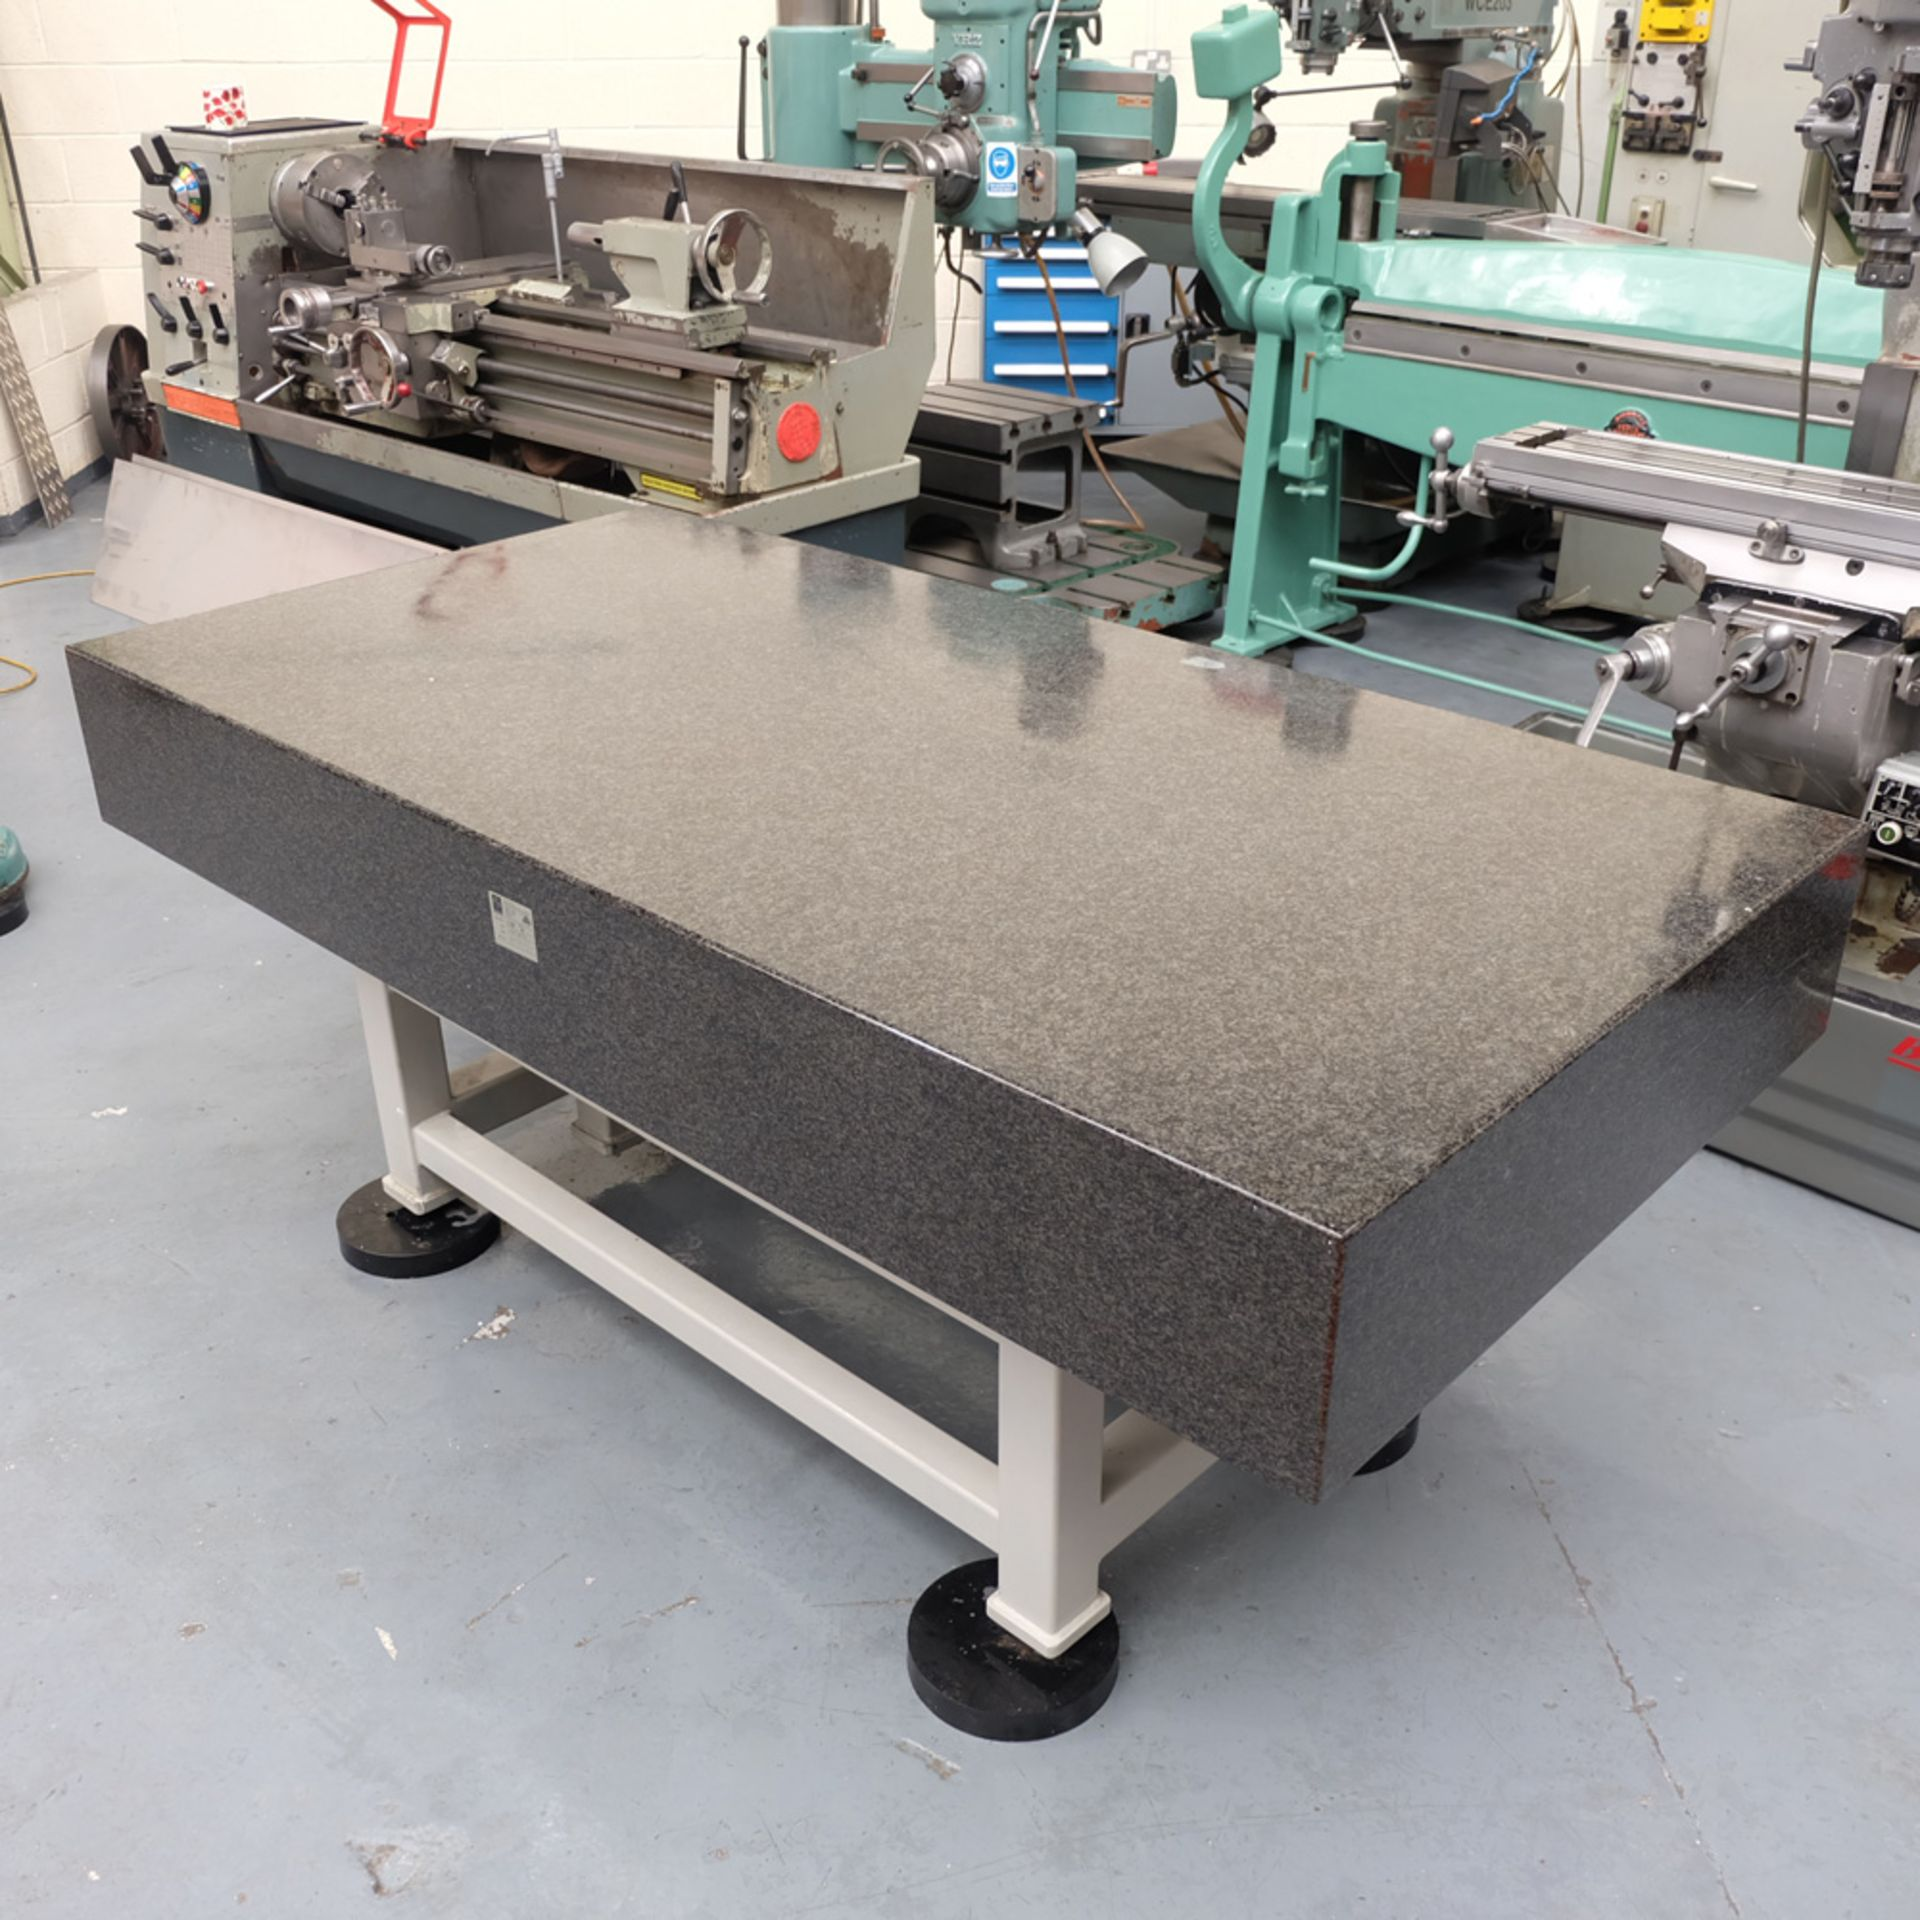 Eley Metrology Granite Surface Table. Table Size 2000mm x 1000mm x 260mm. - Image 2 of 7